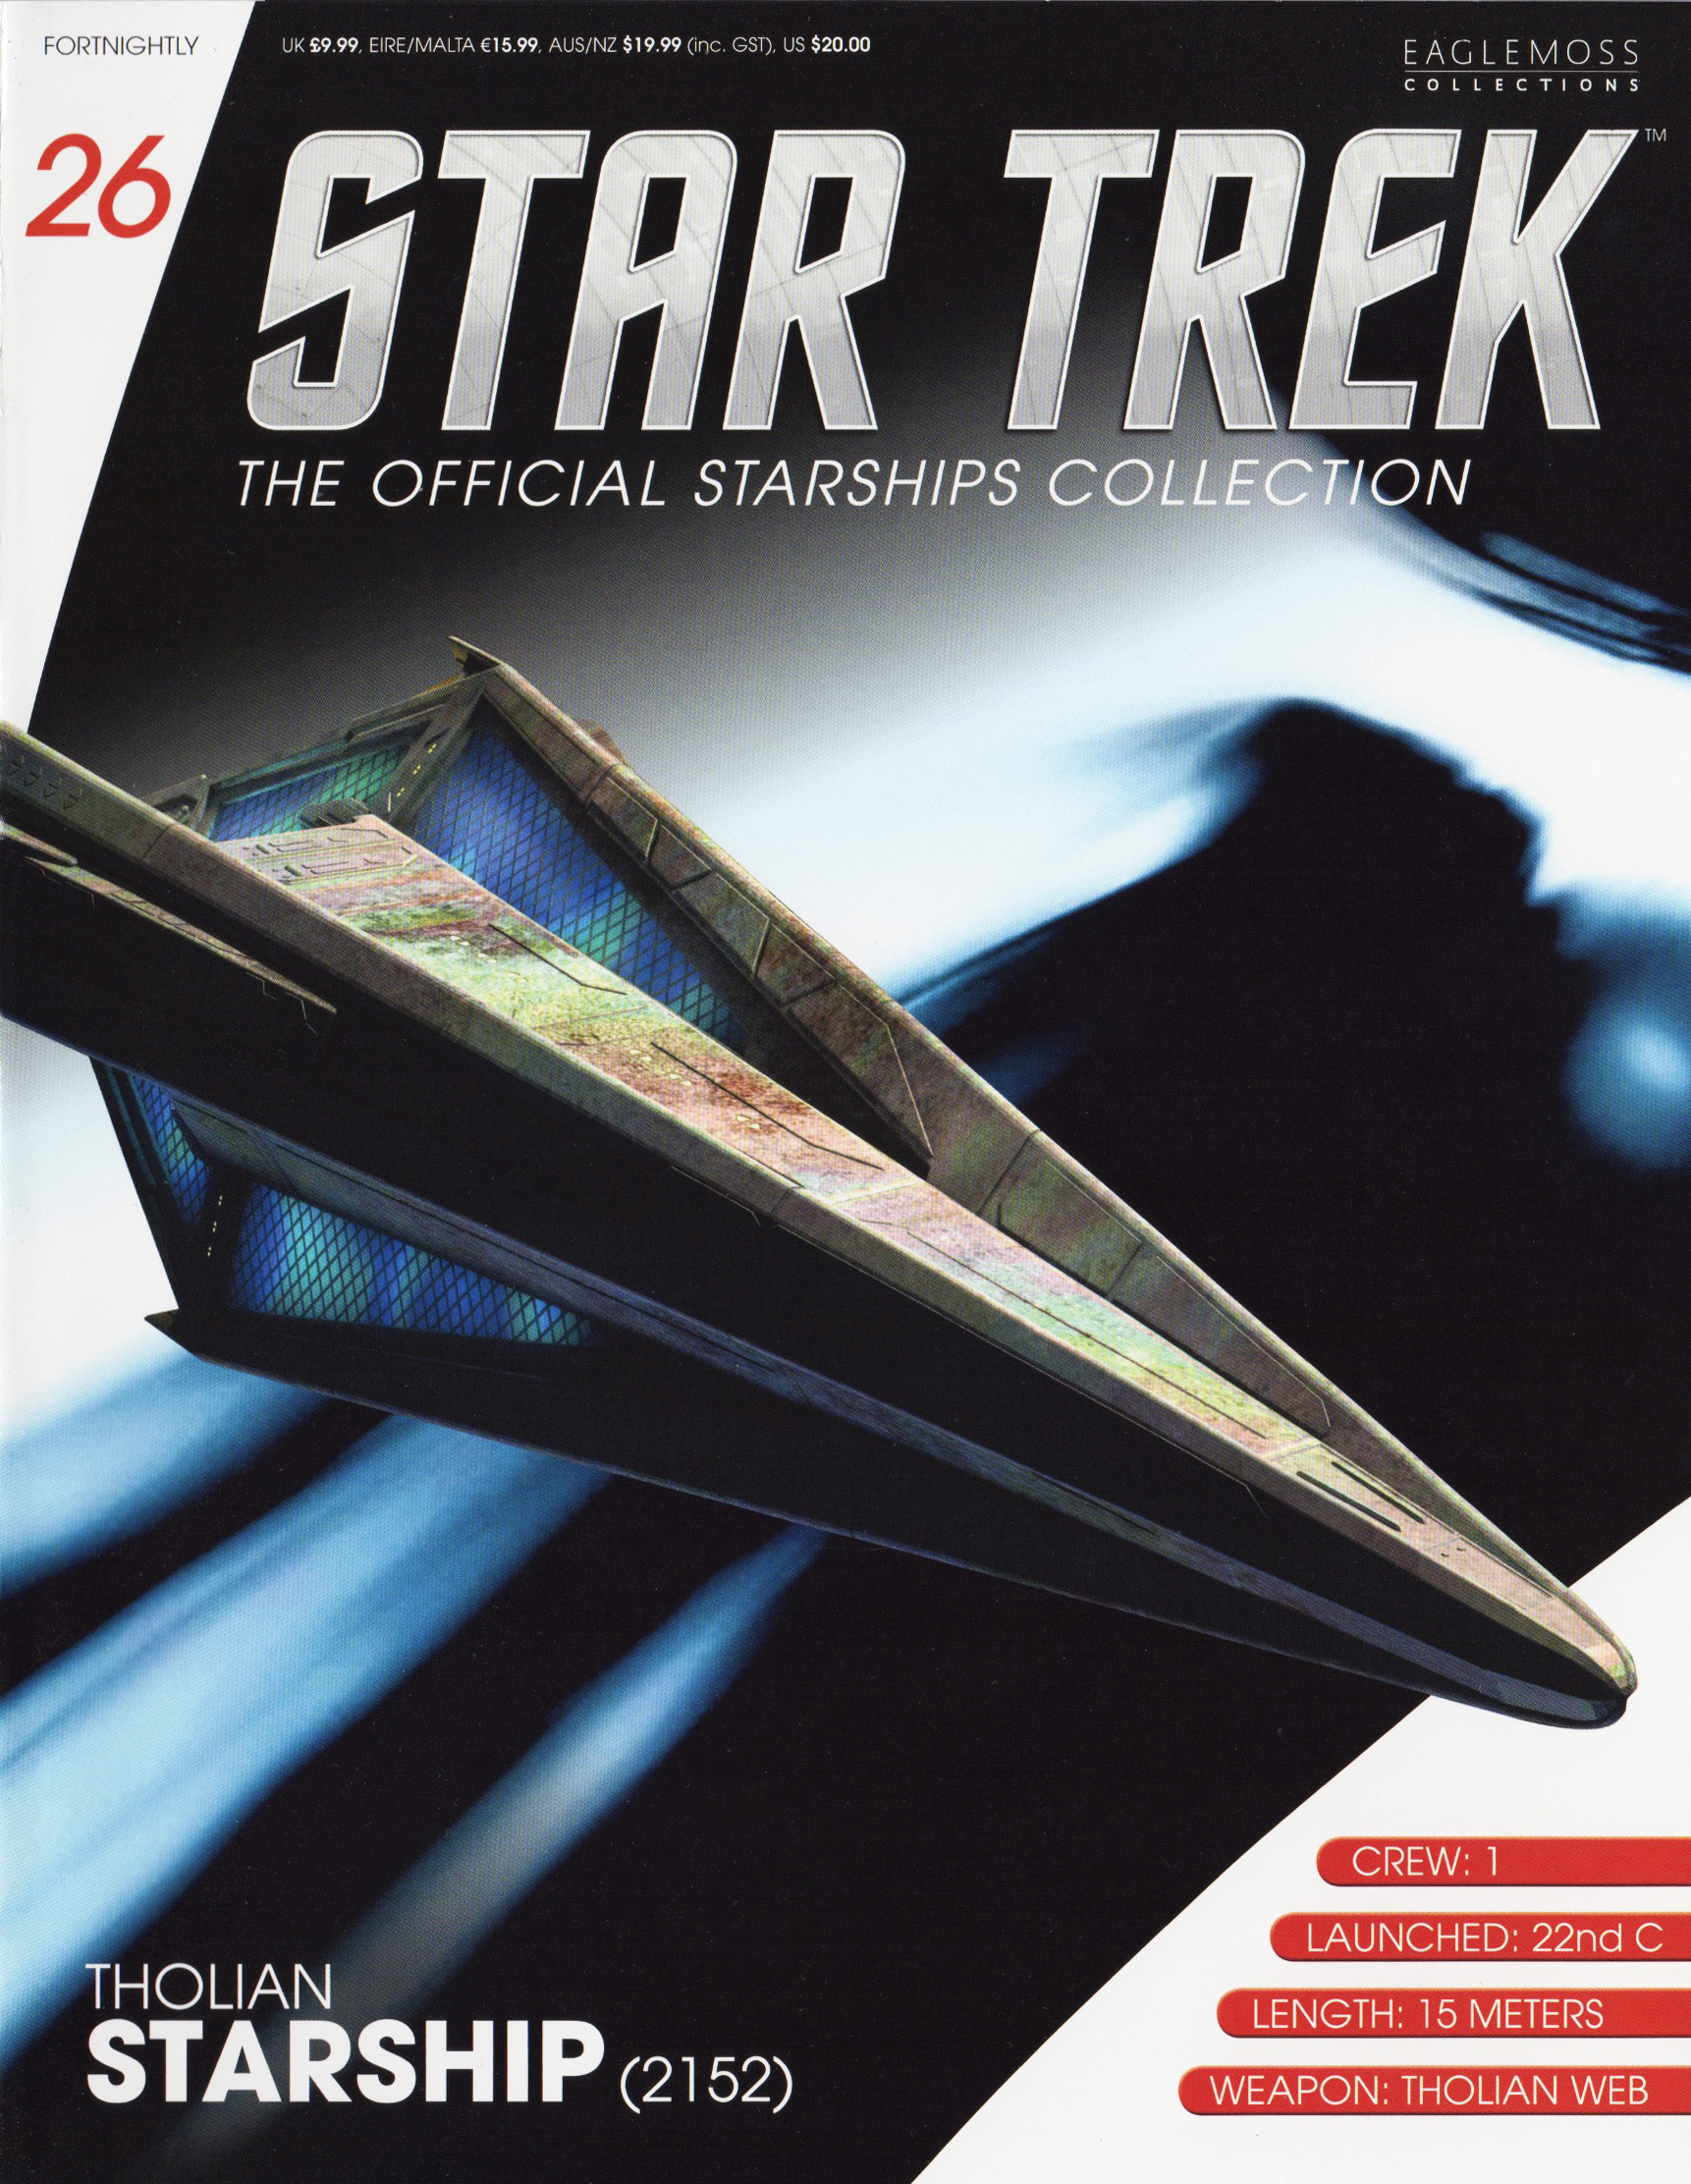 Eaglemoss Star Trek Starships Issue 26